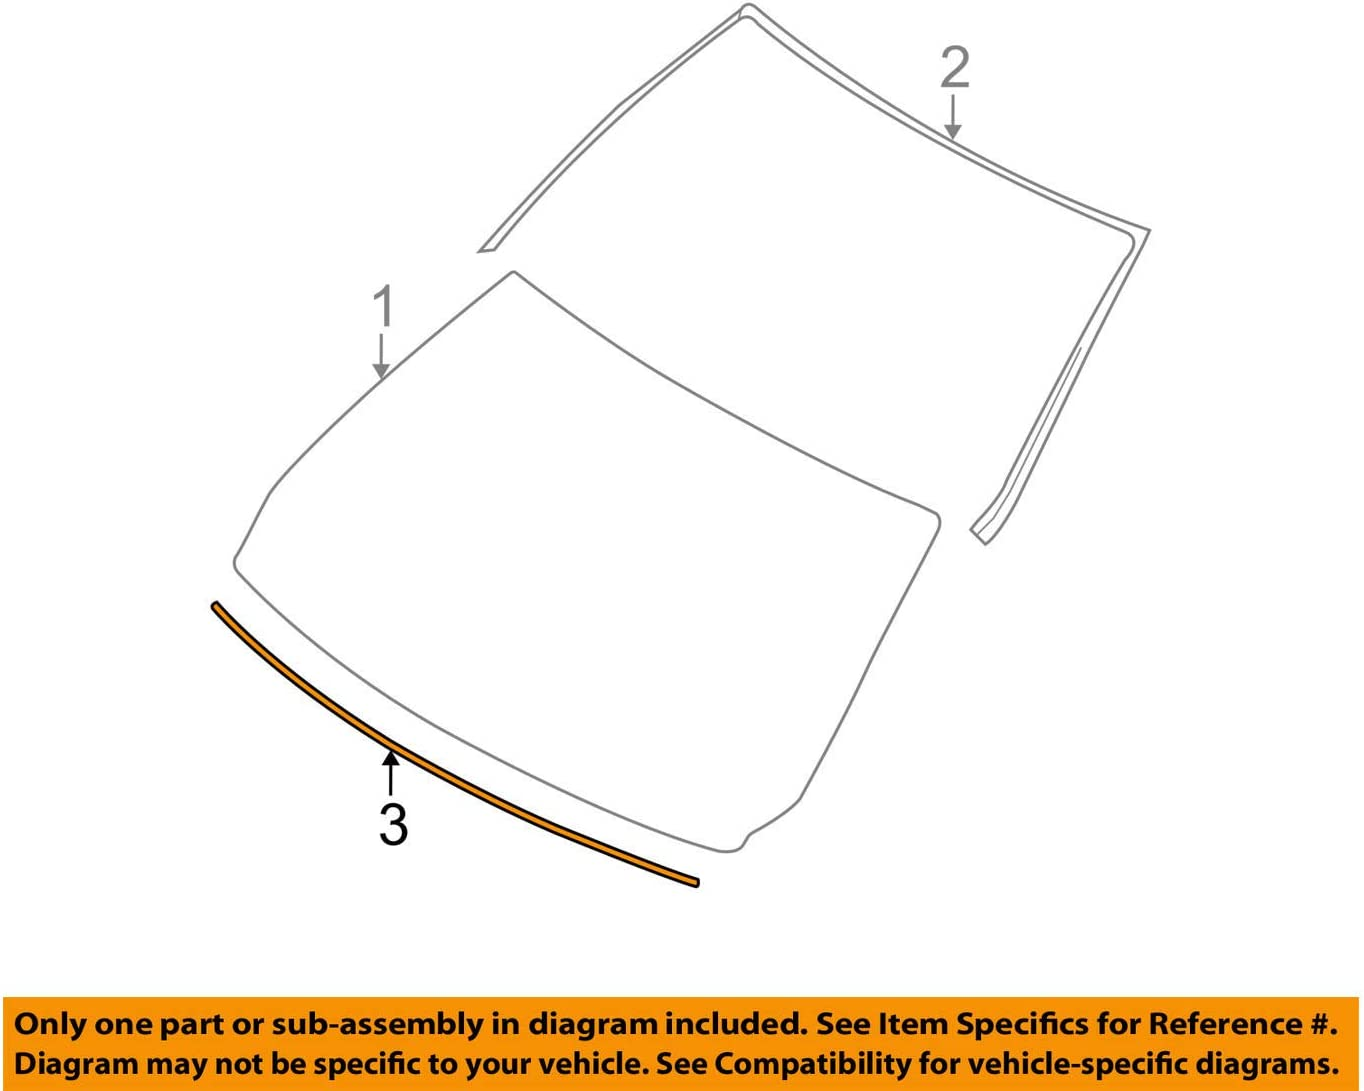 BMW 51-13-7-133-292 Supporting Ledge (:513199), 1 Pack